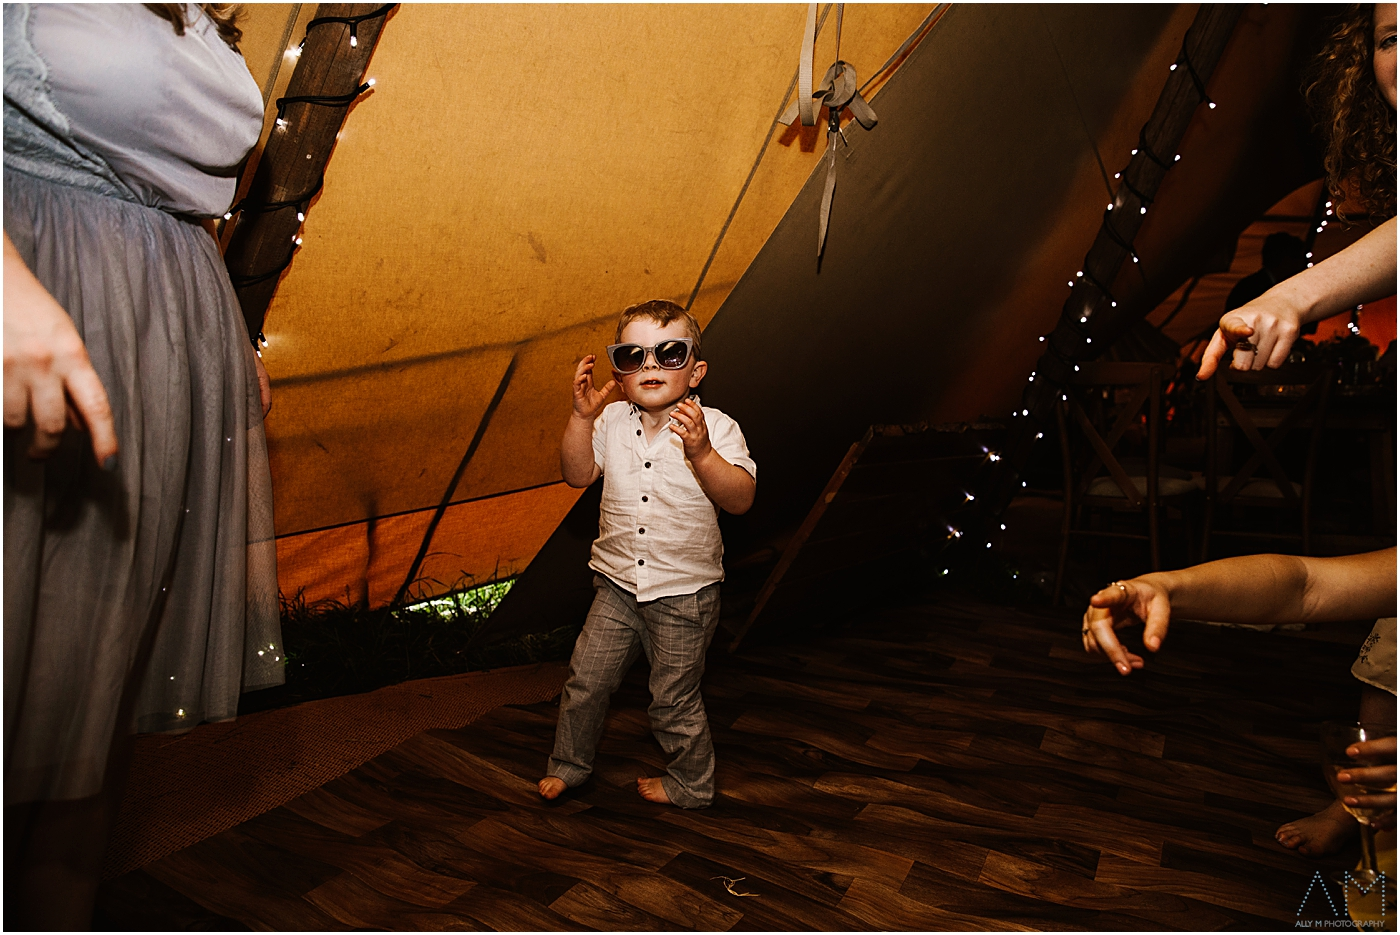 cool kid on the dance floor